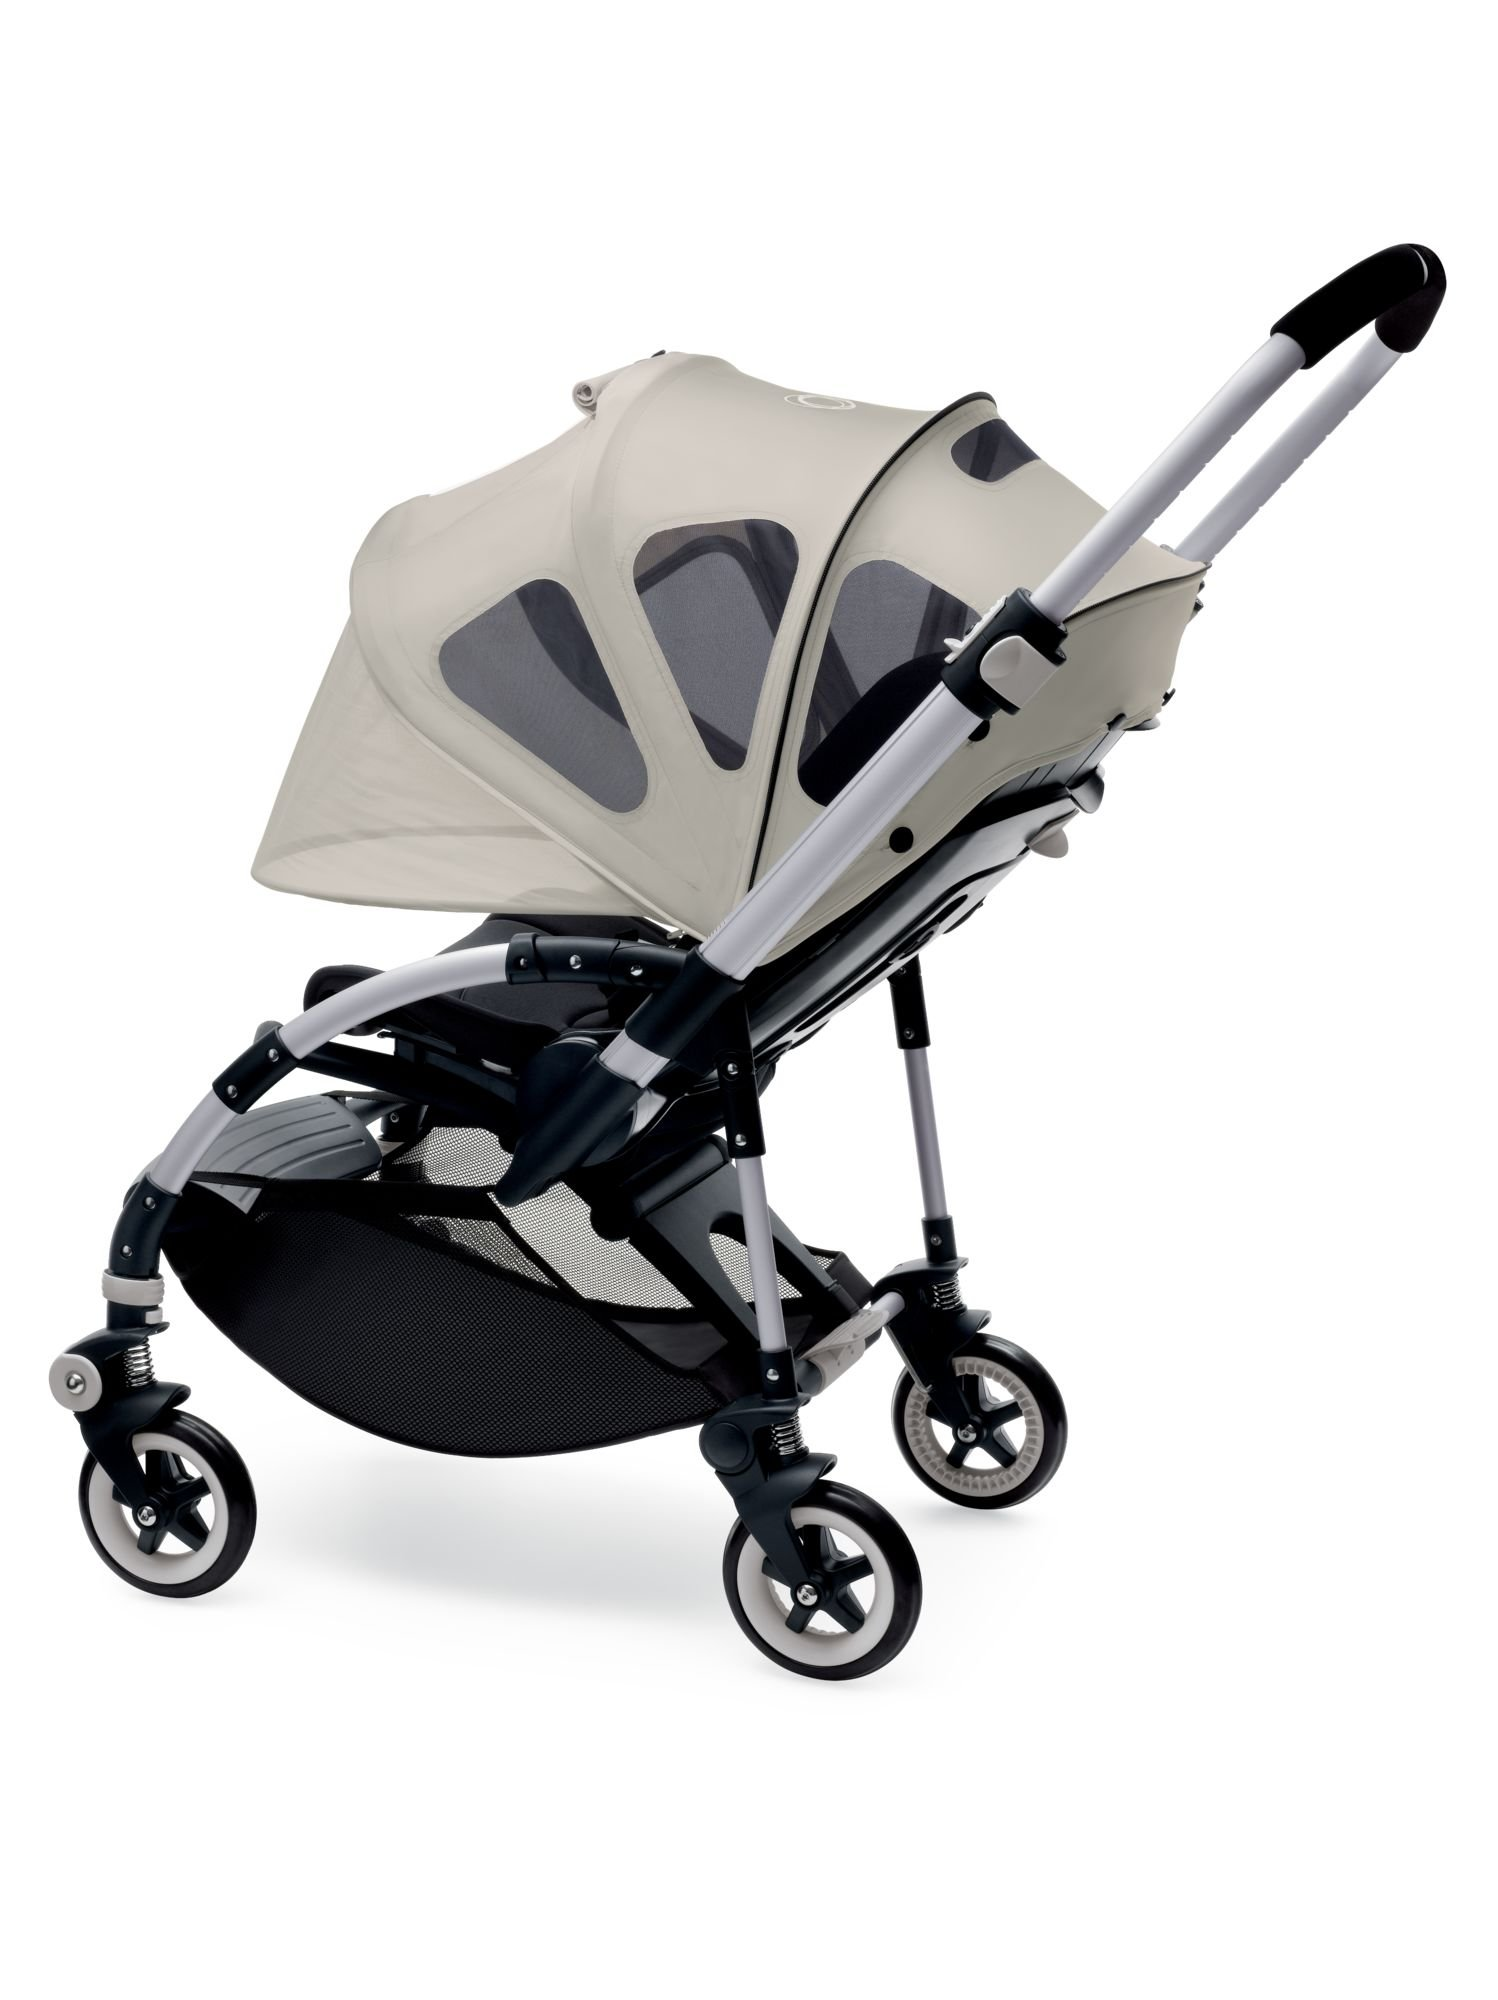 Bugaboo Bee Breezy Sun Canopy, Arctic Grey - Extendable Sun Canopy with UPF Sun Protection and Mesh Ventilation Panels by Bugaboo (Image #3)